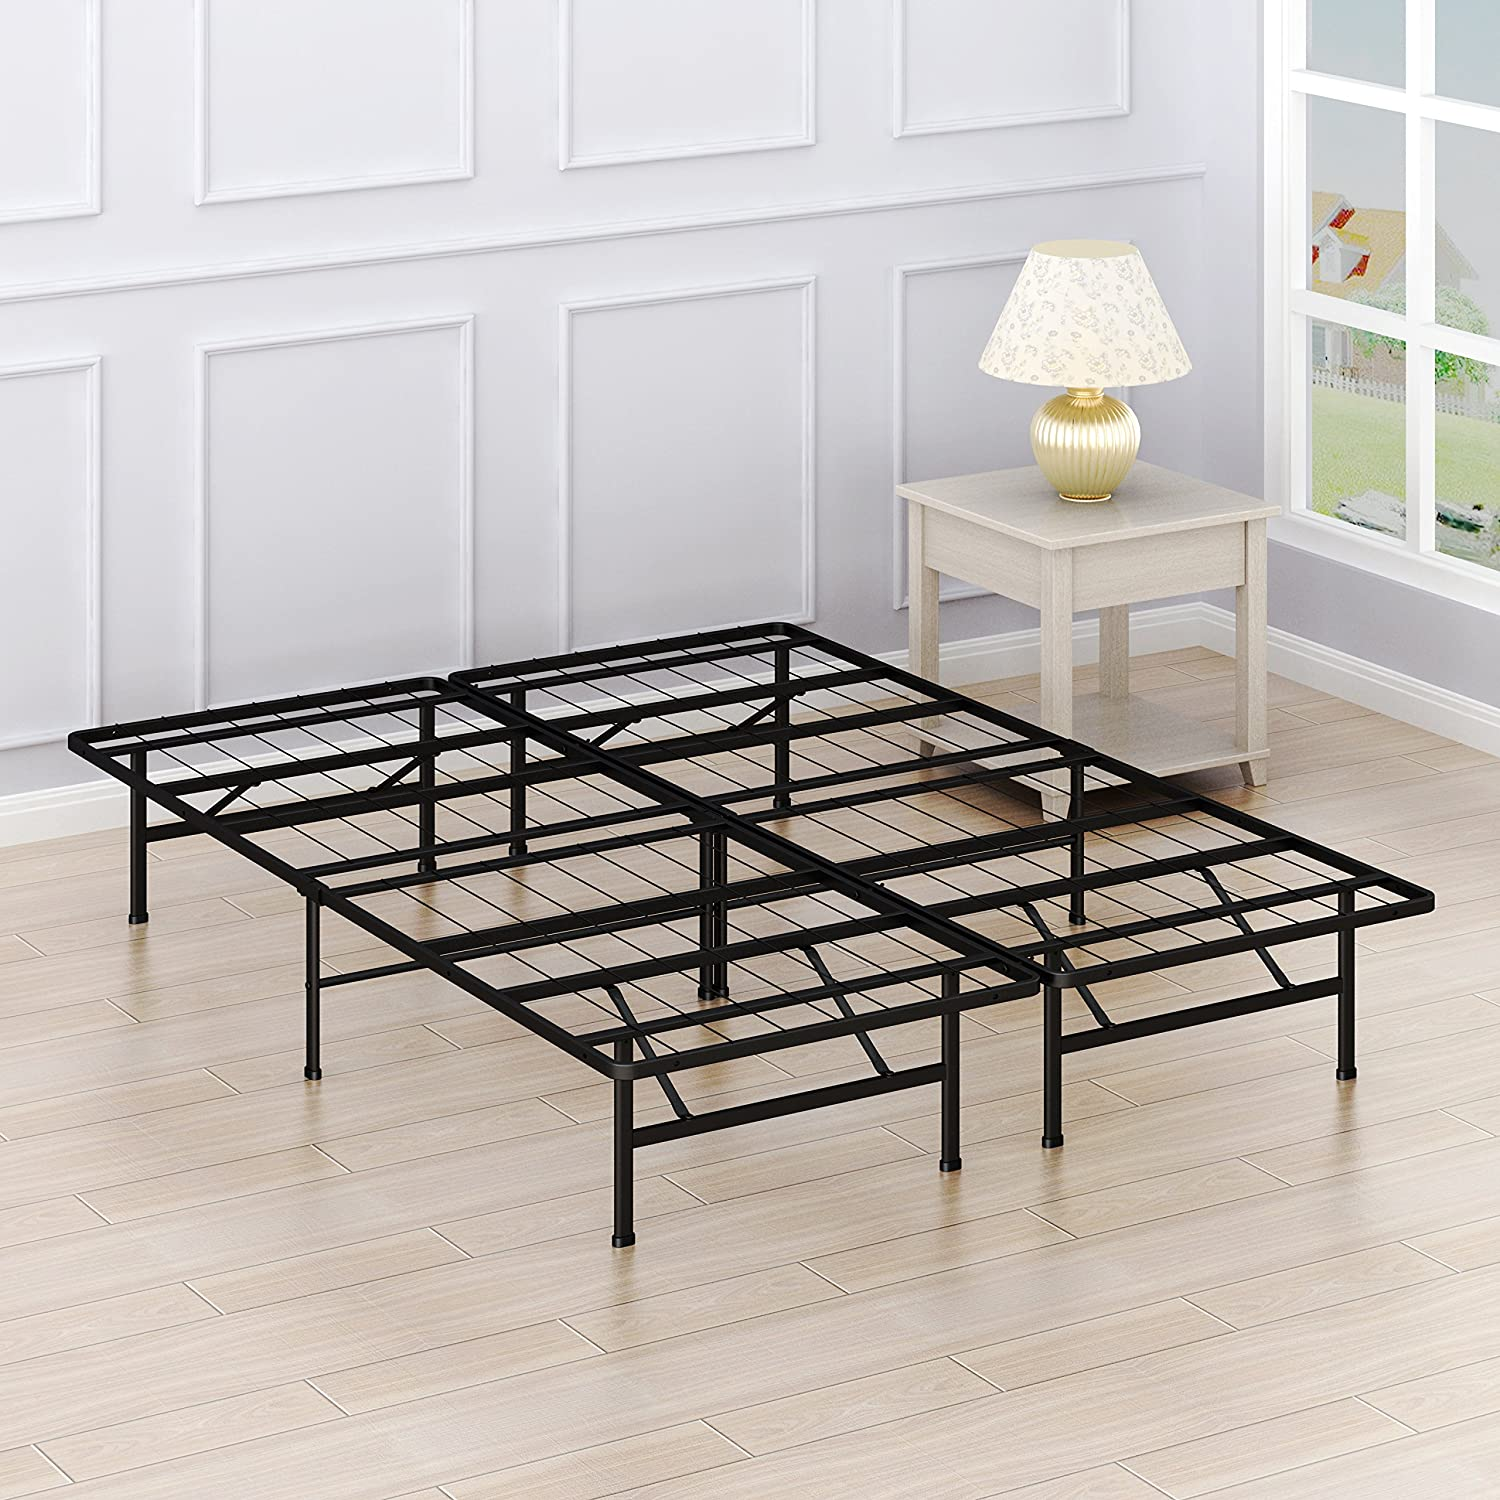 Simple Houseware 14-Inch Queen Size Platform Bed Frame